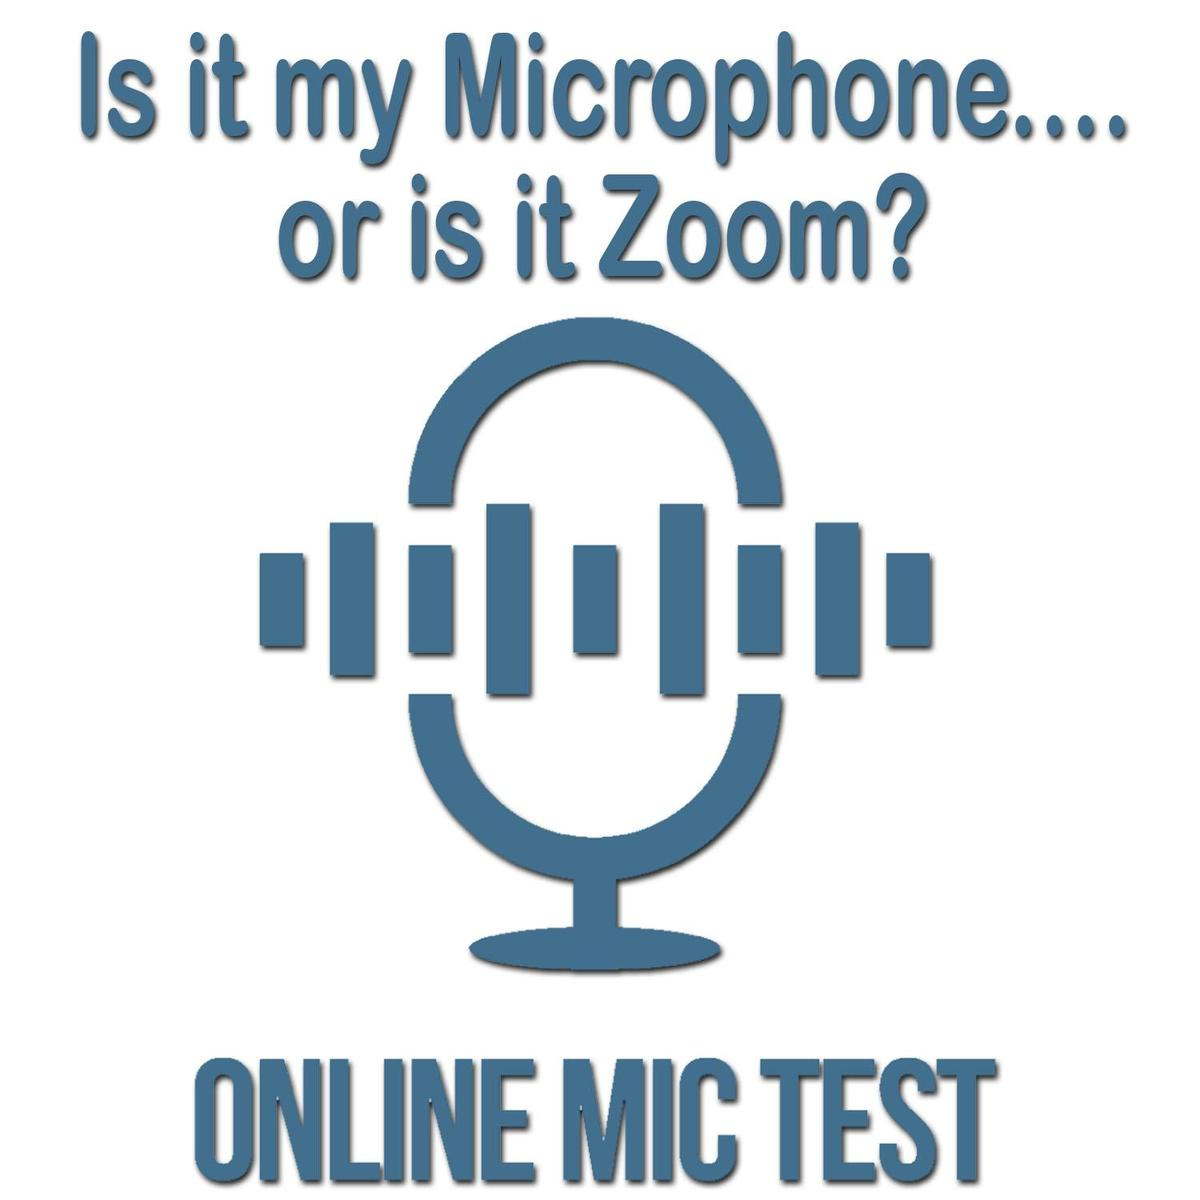 mic or zoom